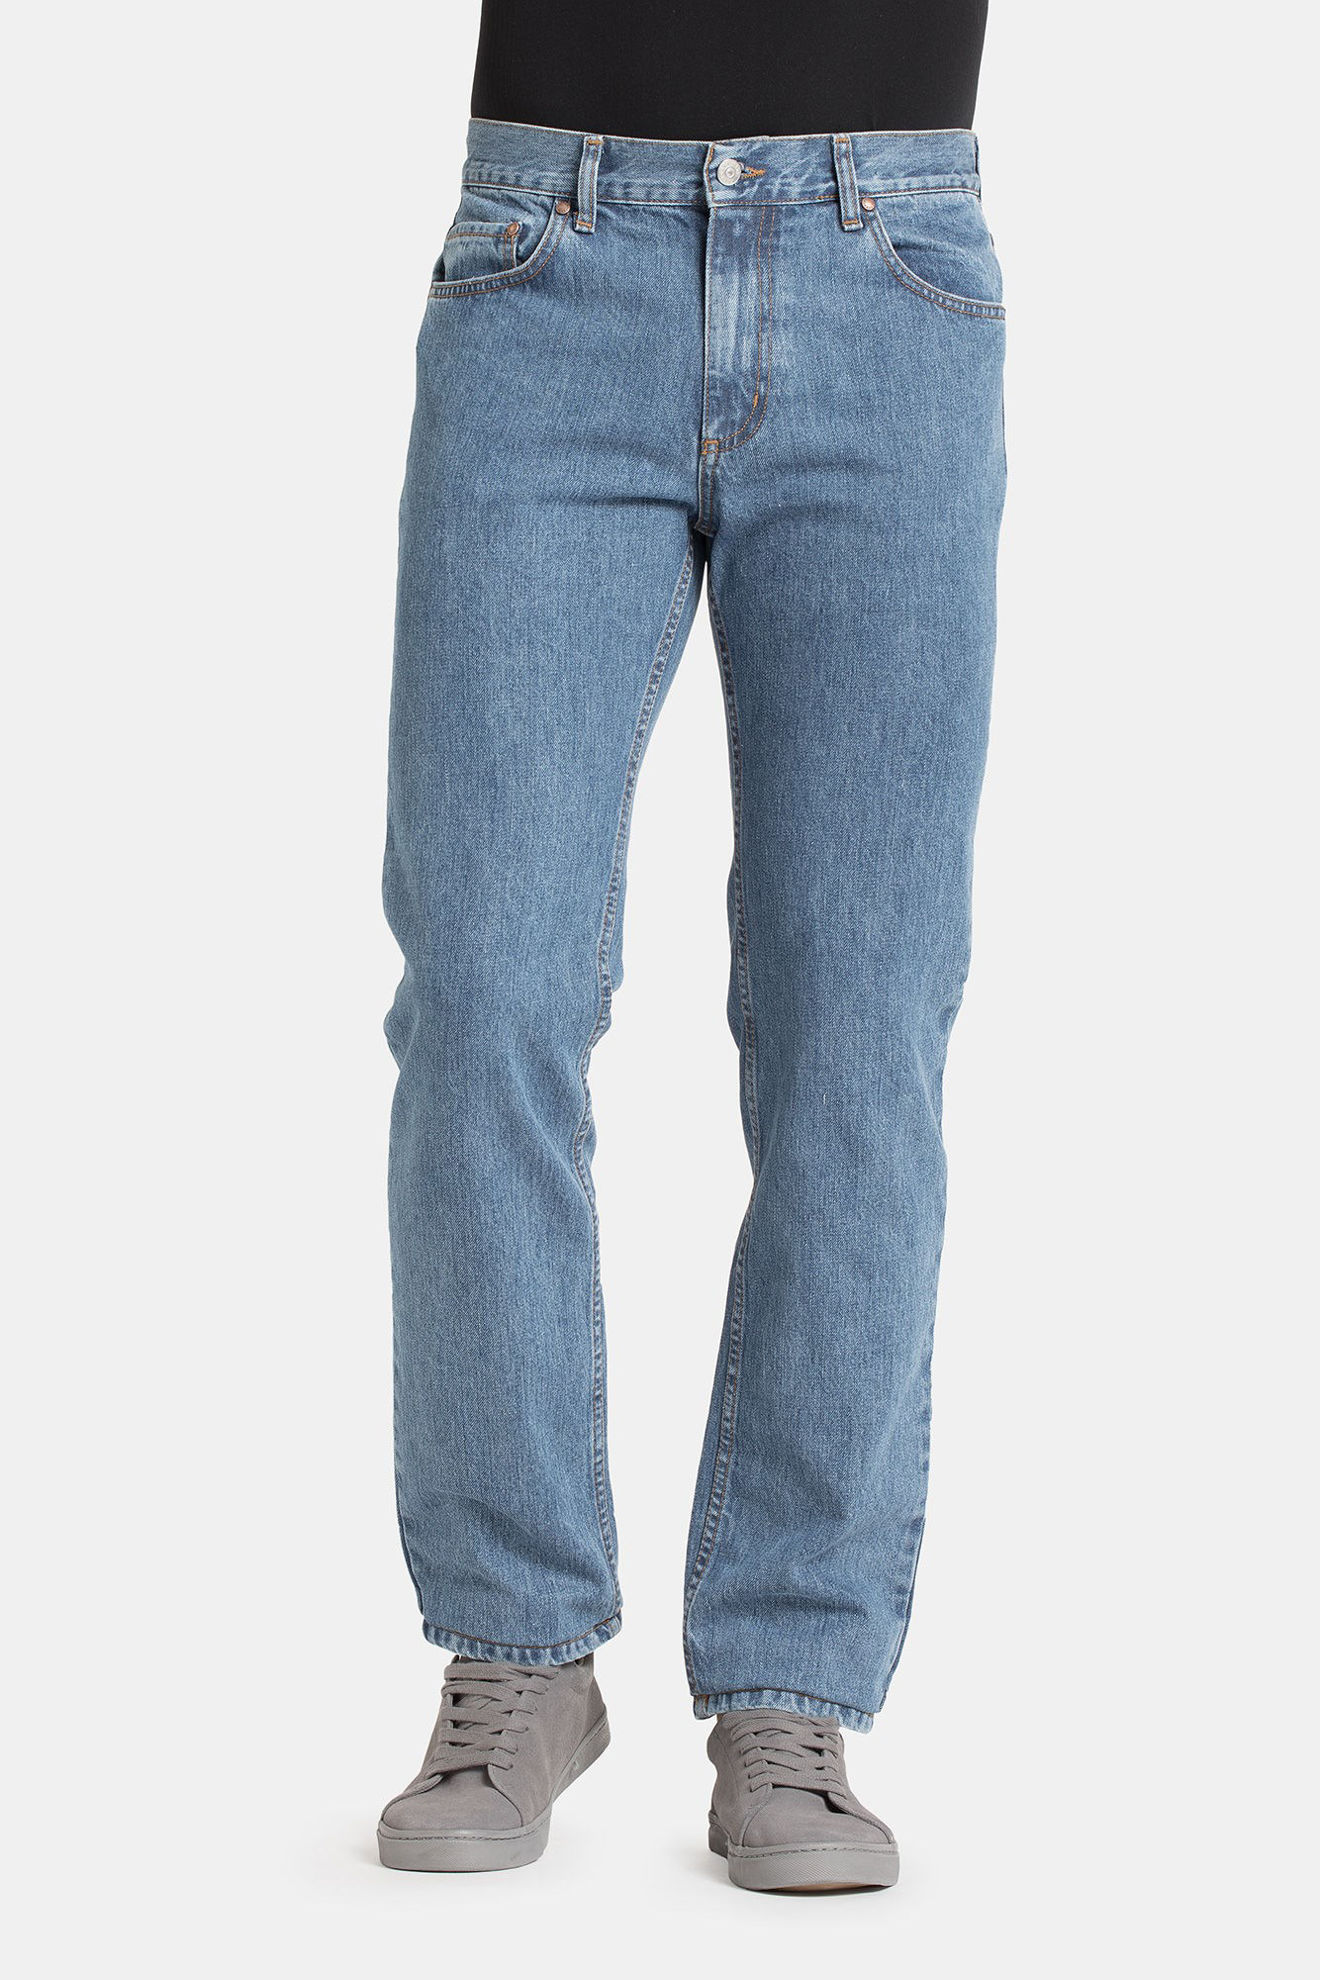 Immagine di CARRERA - JEANS DENIM SCURO 5TASCHE 14oz